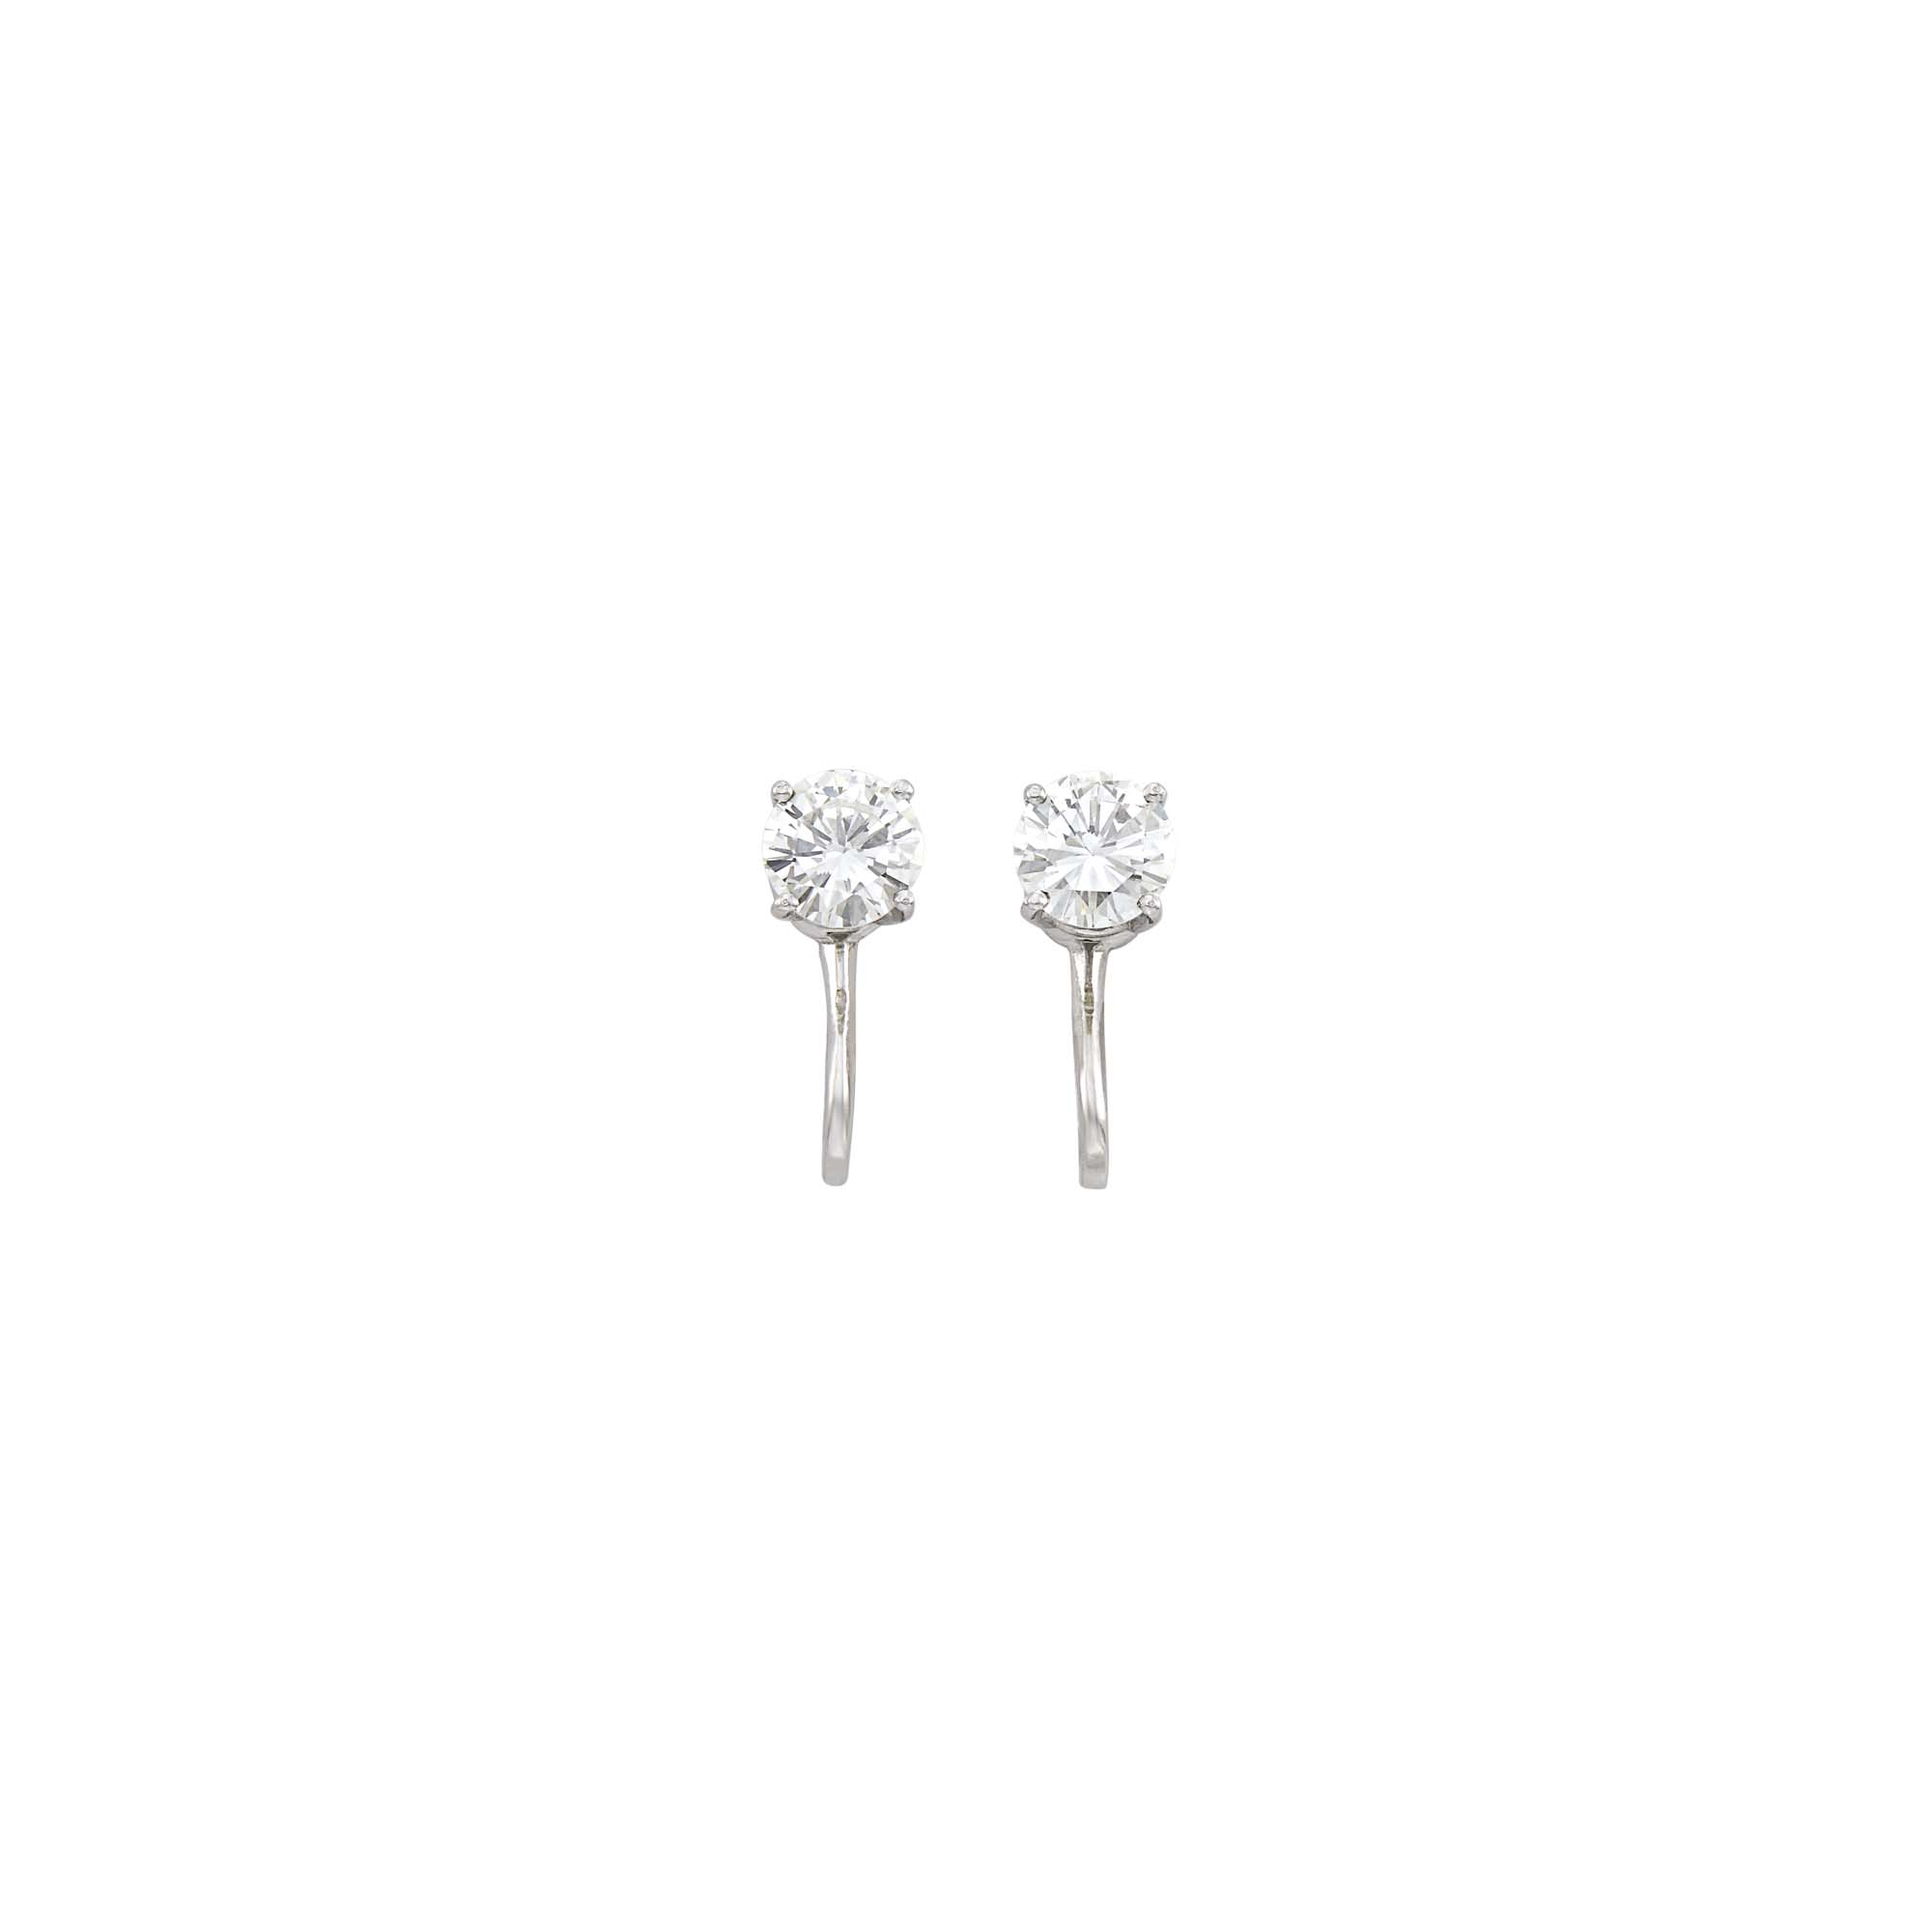 Lot image - Pair of White Gold and Diamond Stud Earclips